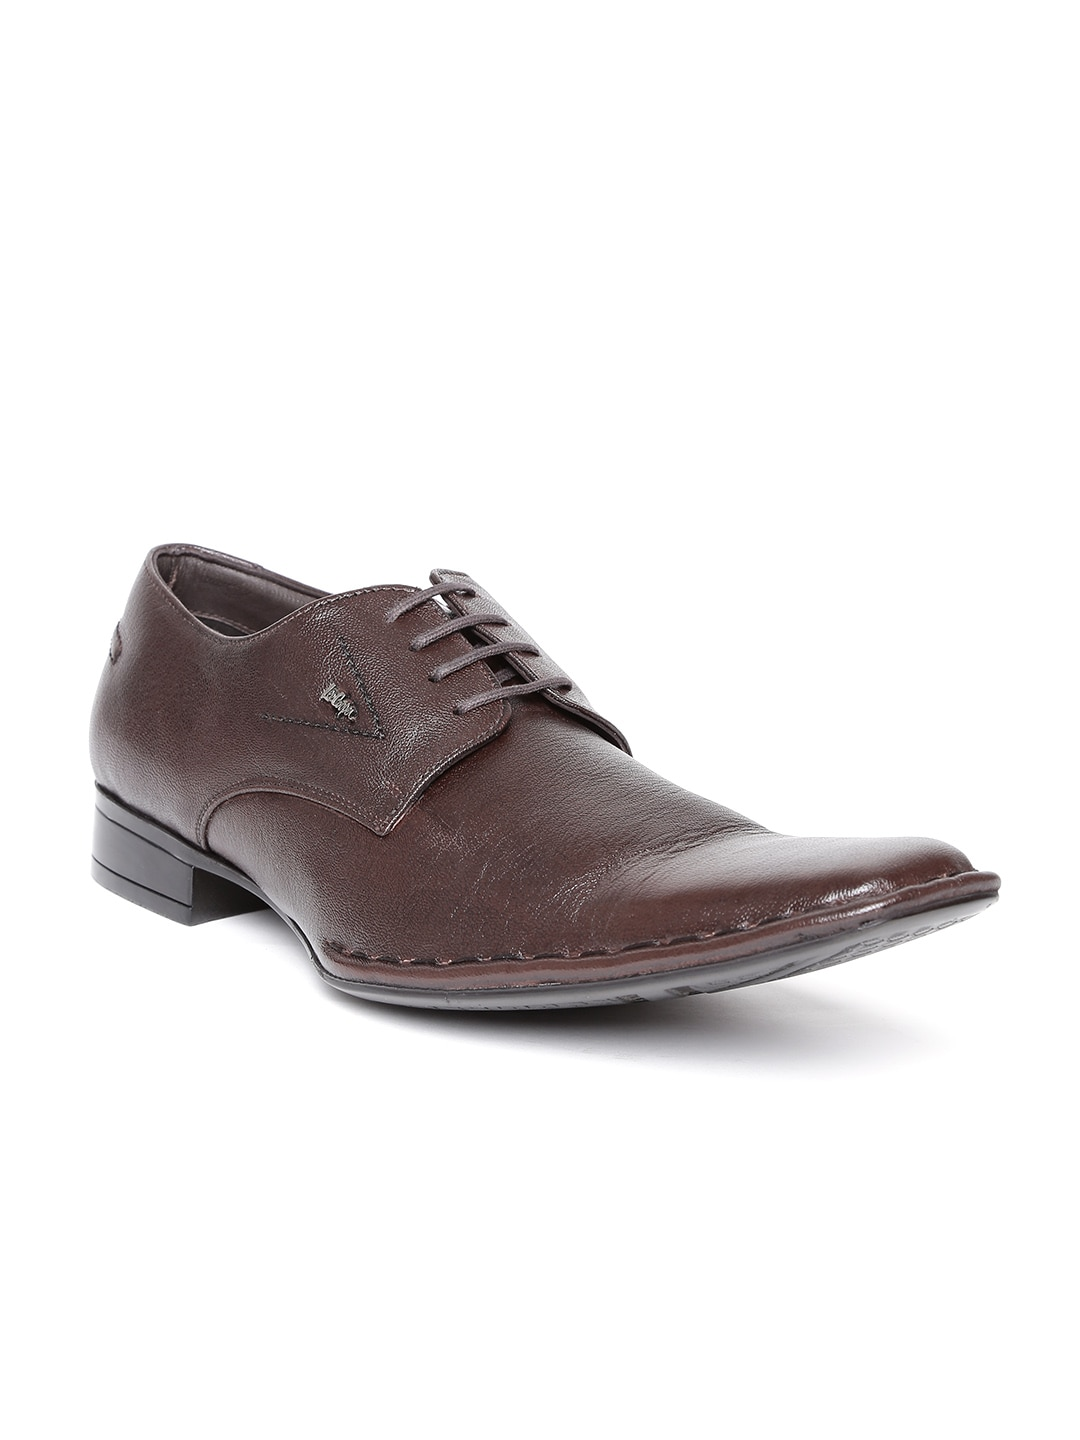 Men Footwear - Buy Mens Footwear   Shoes Online in India - Myntra 64aa41c67f0